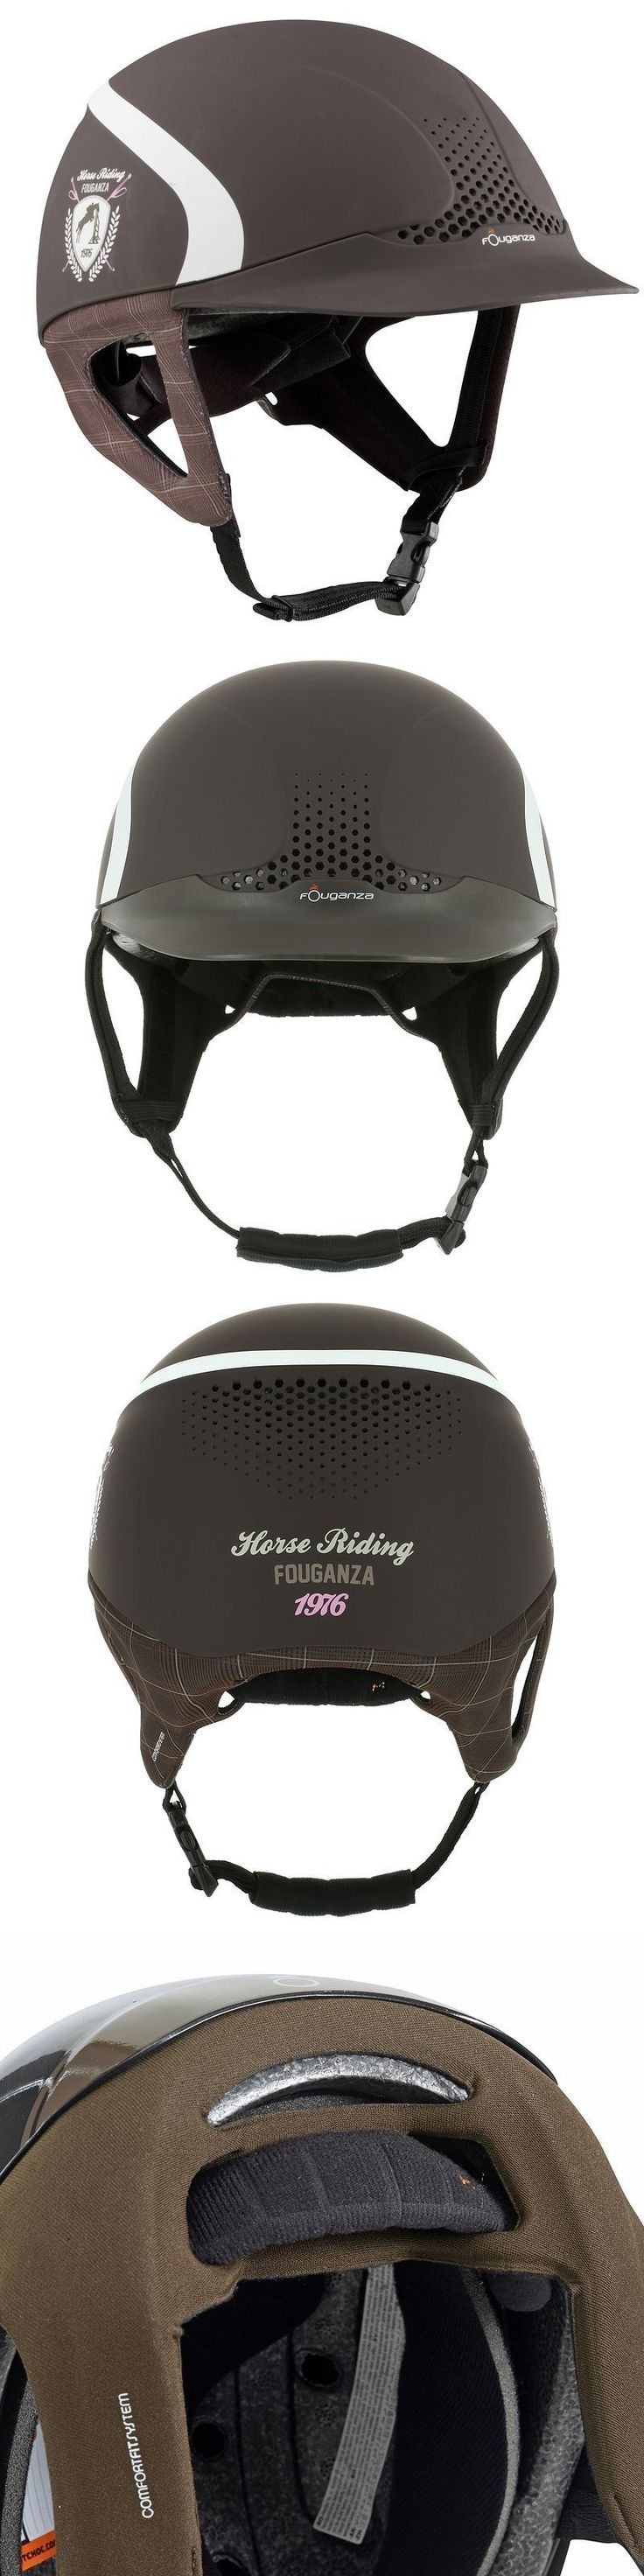 Riding Helmets 47269: Fouganza Horse Riding Hat Helmet Safety Jump Headwear Equestrian Protective -> BUY IT NOW ONLY: $59 on eBay!